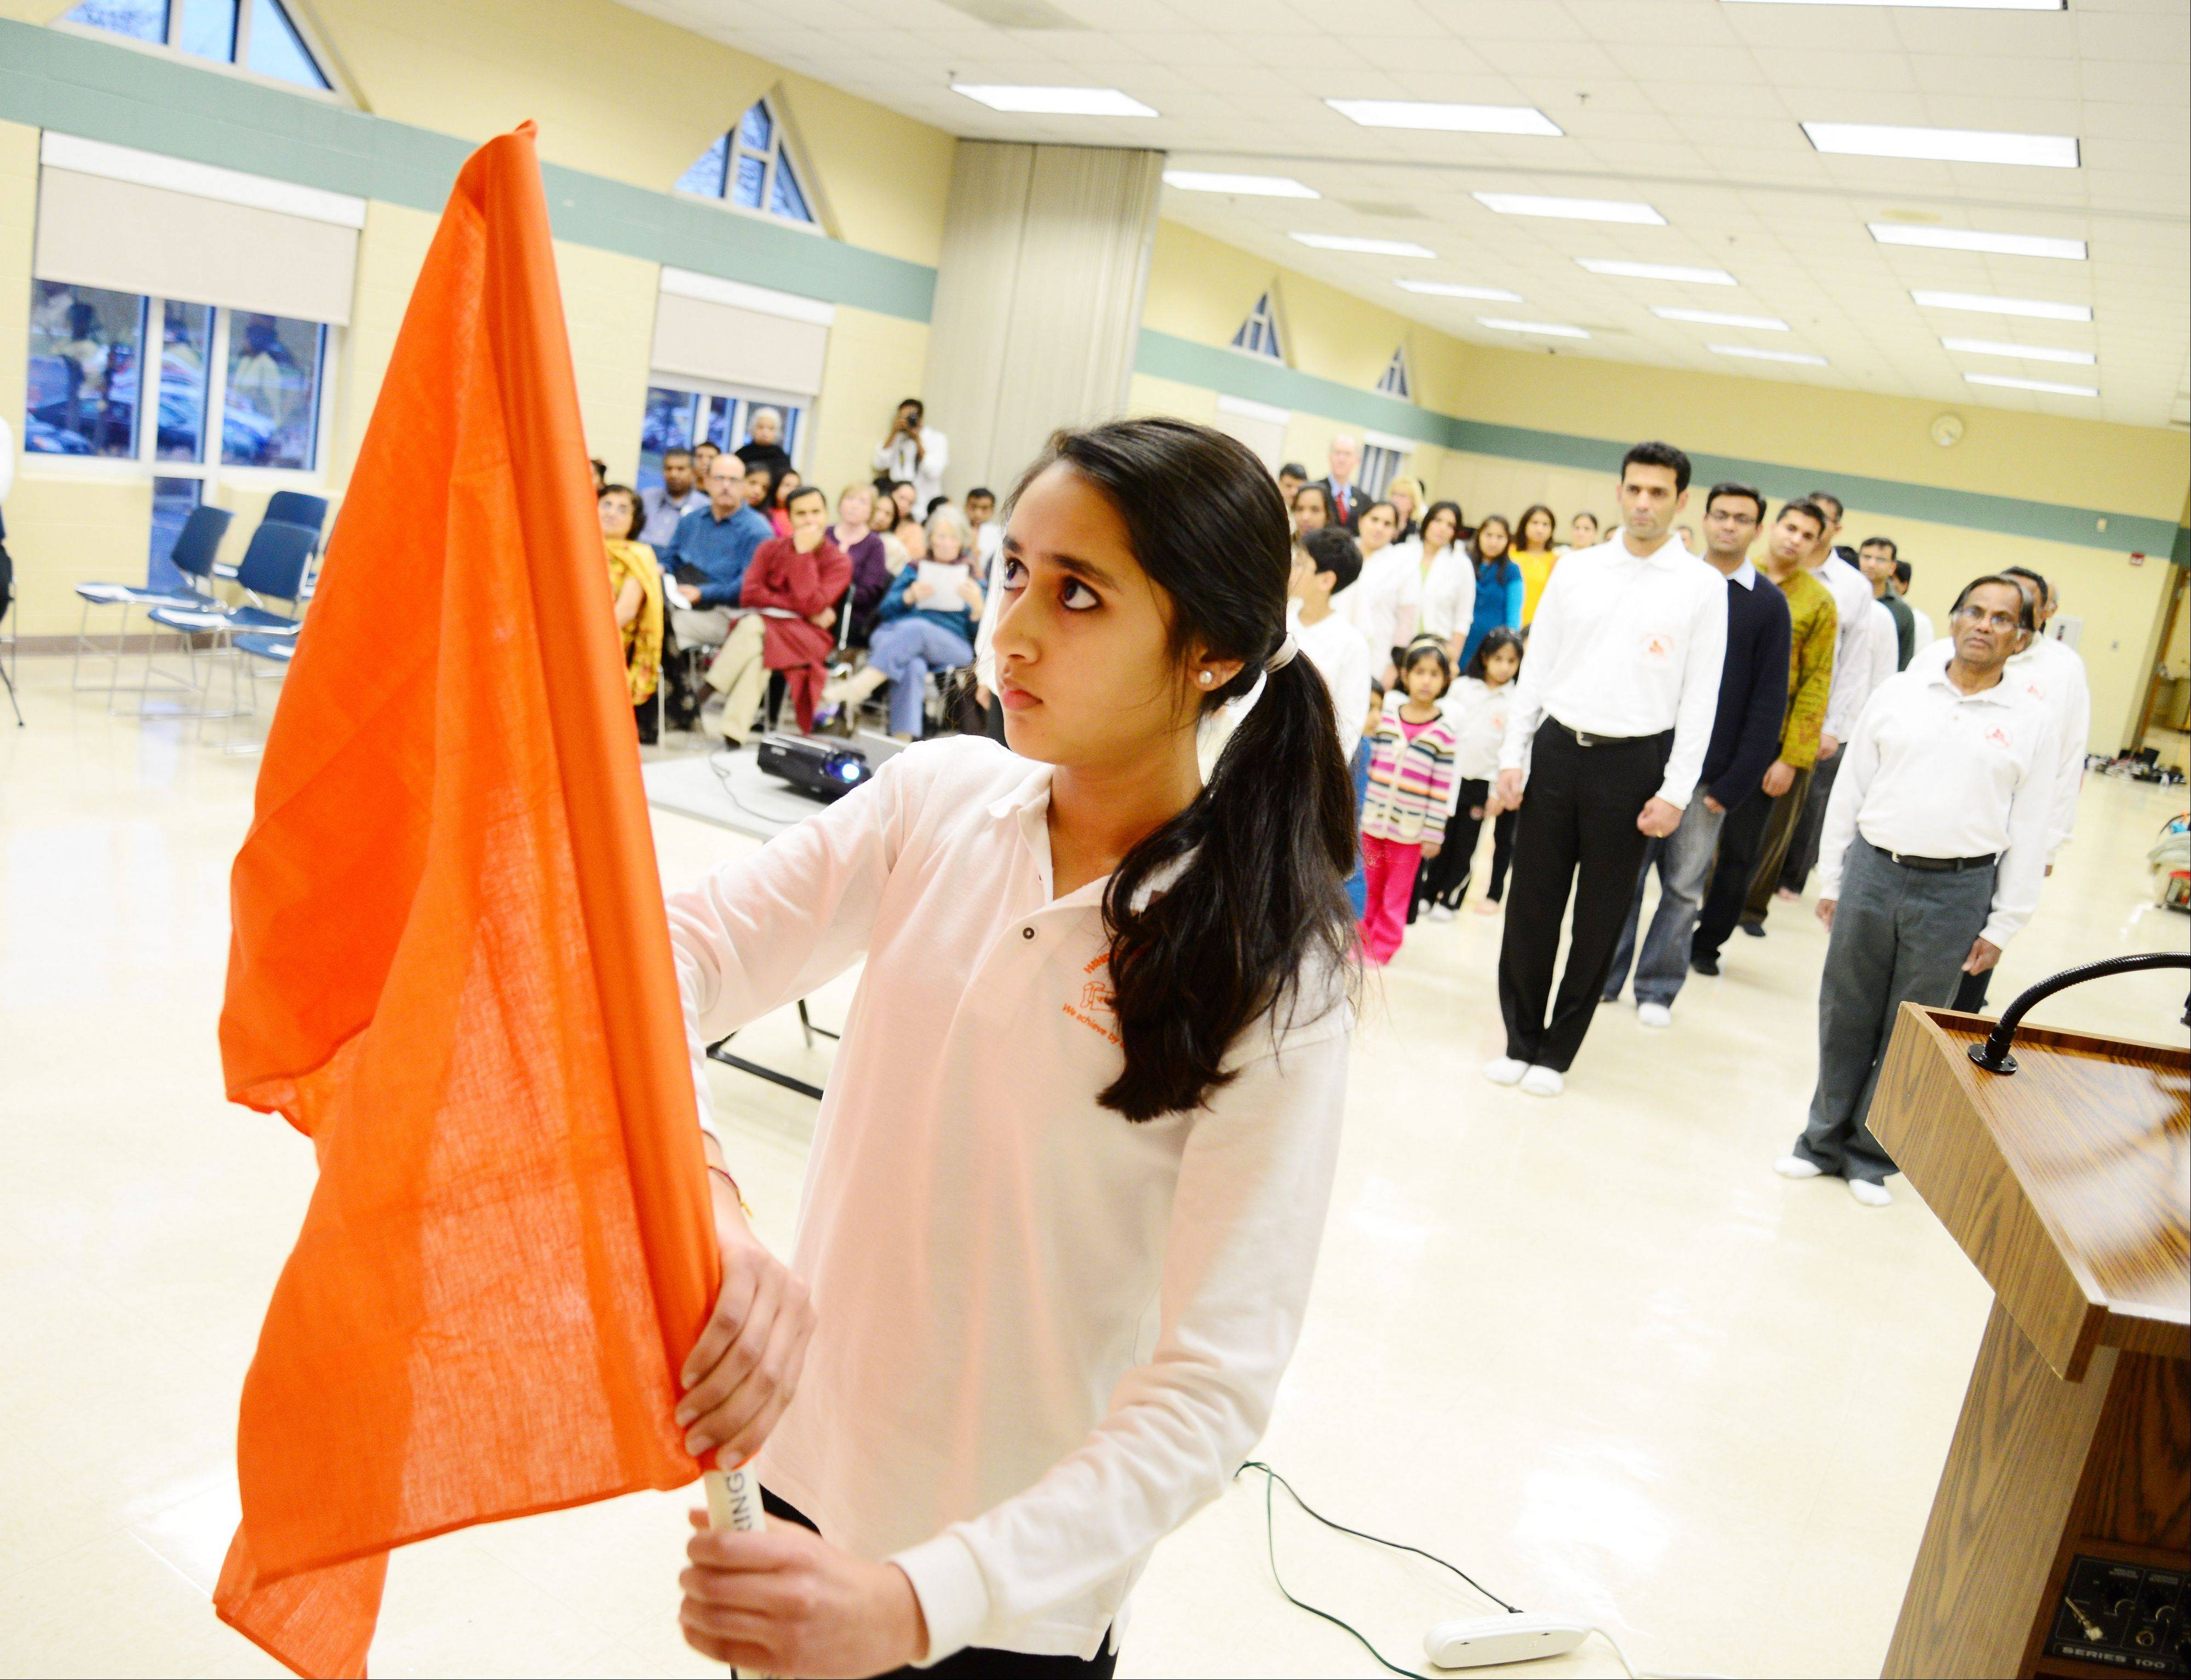 Pragya Maheshwari of Naperville prepared the flag while the Naperville-Aurora chapter of HSS celebrated the 150th birth anniversary of Swami Vivekananda.